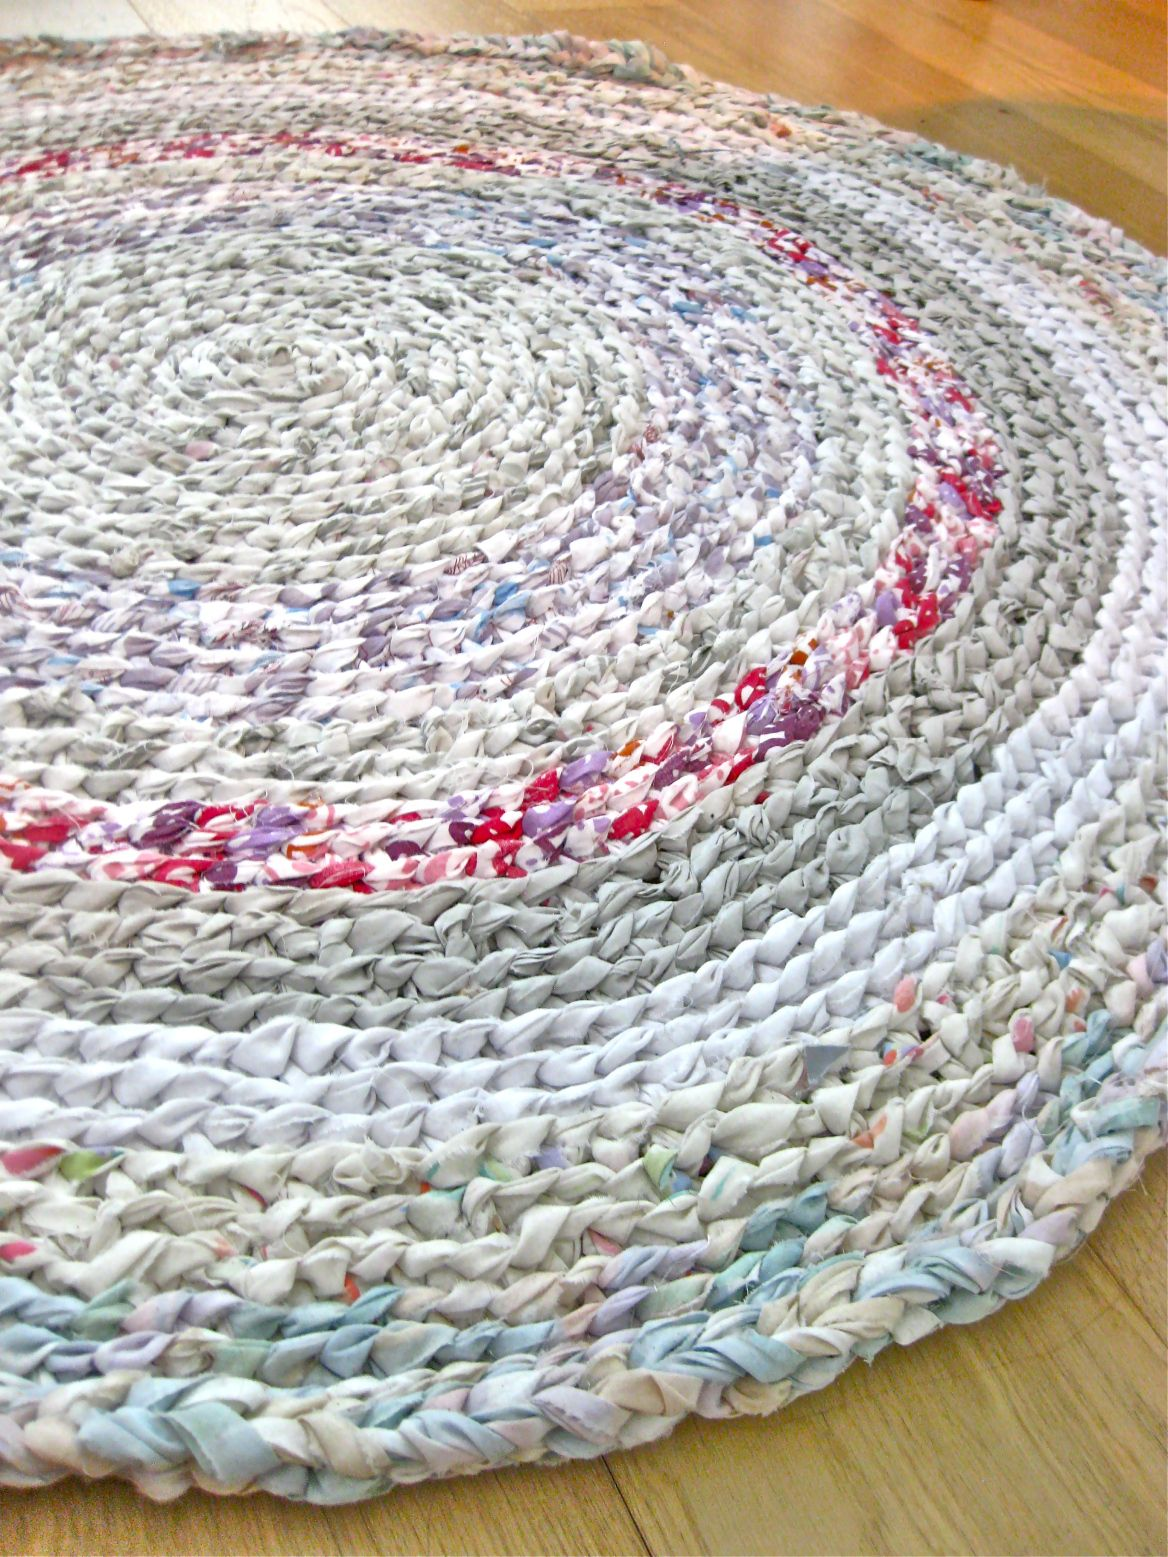 how to make a braided rag rug from sheets